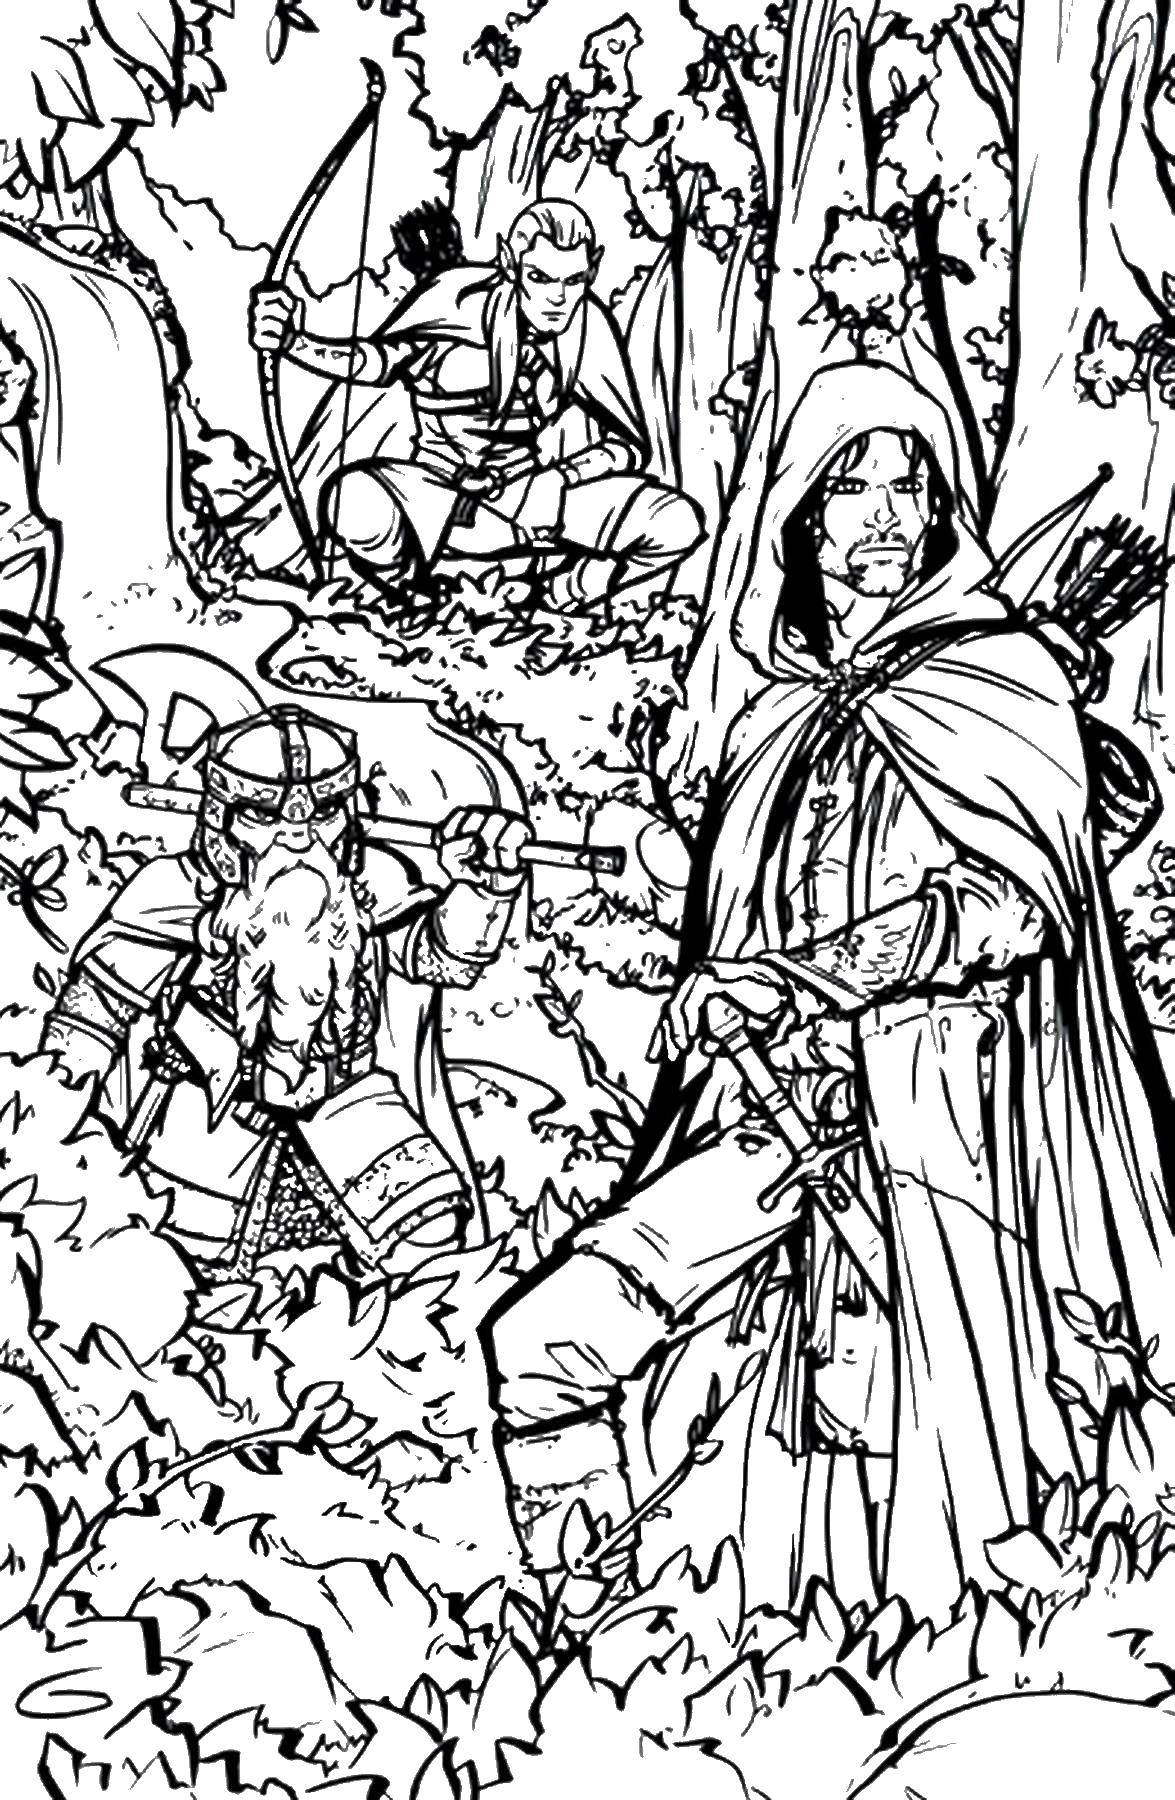 Coloring Legolas and Gimli in the forest. Category Lord of the rings. Tags:  Lord of the rings, Legolas, Gimli.